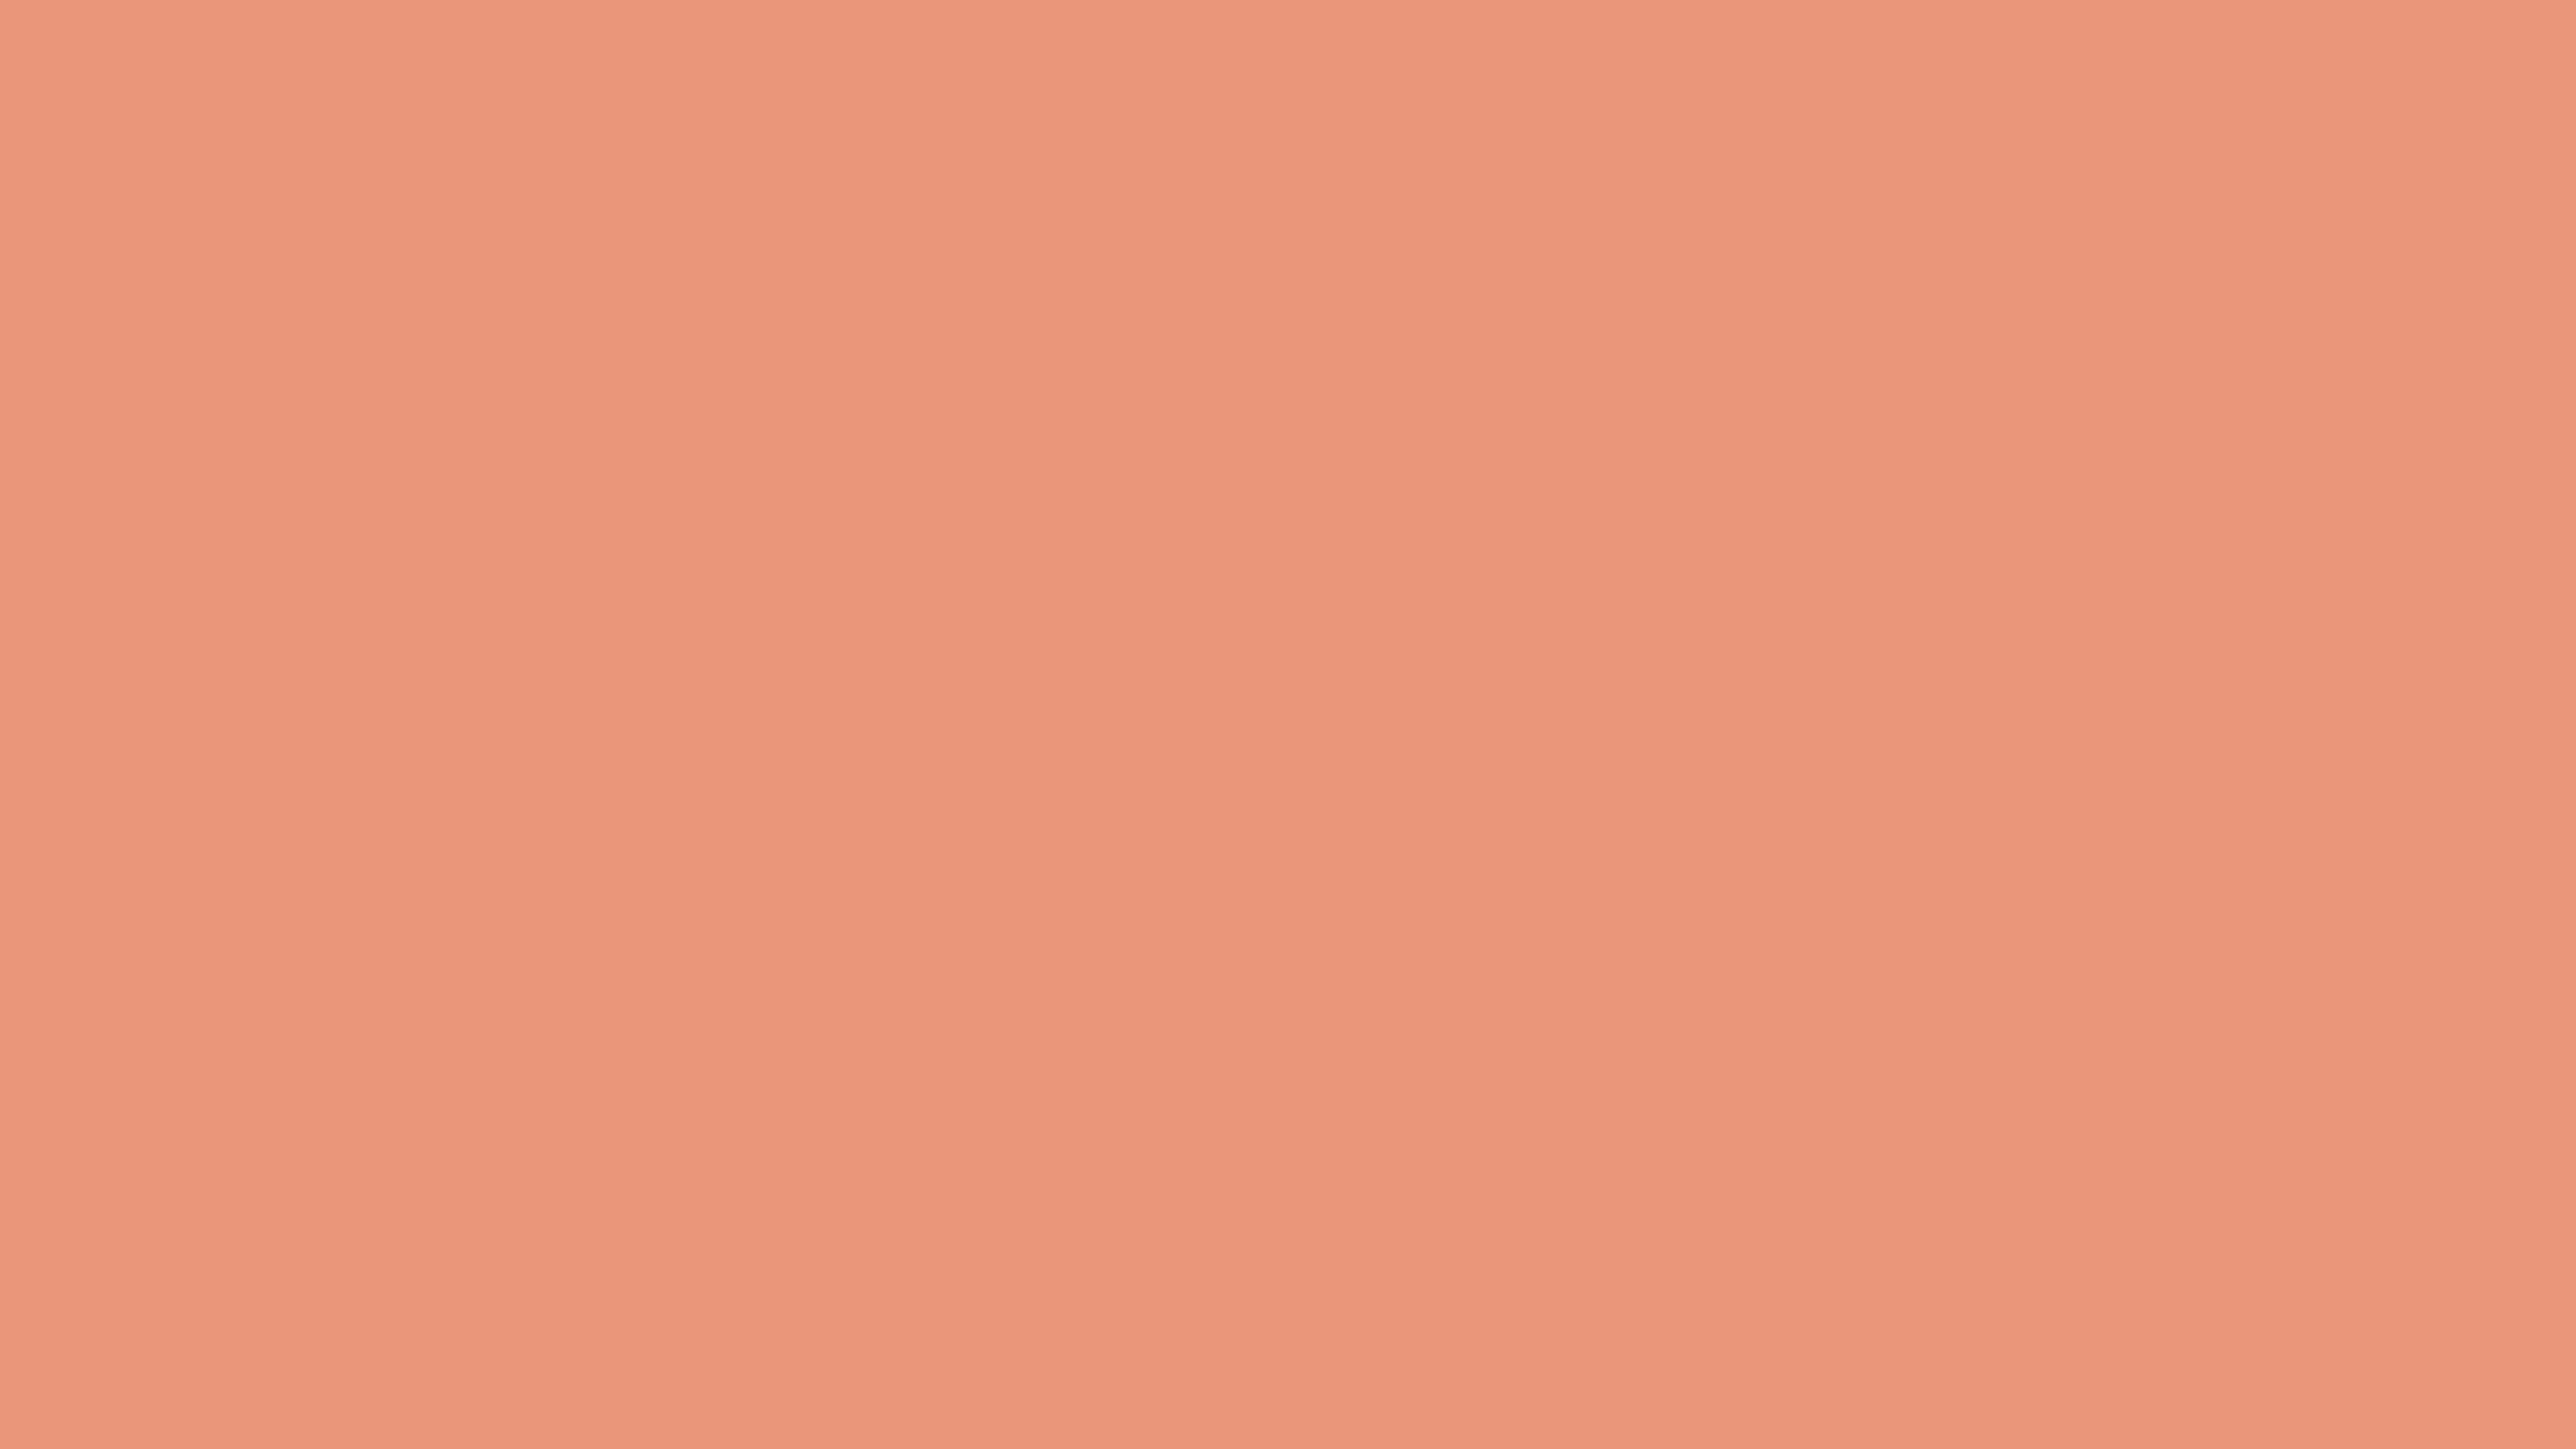 3840x2160 Dark Salmon Solid Color Background